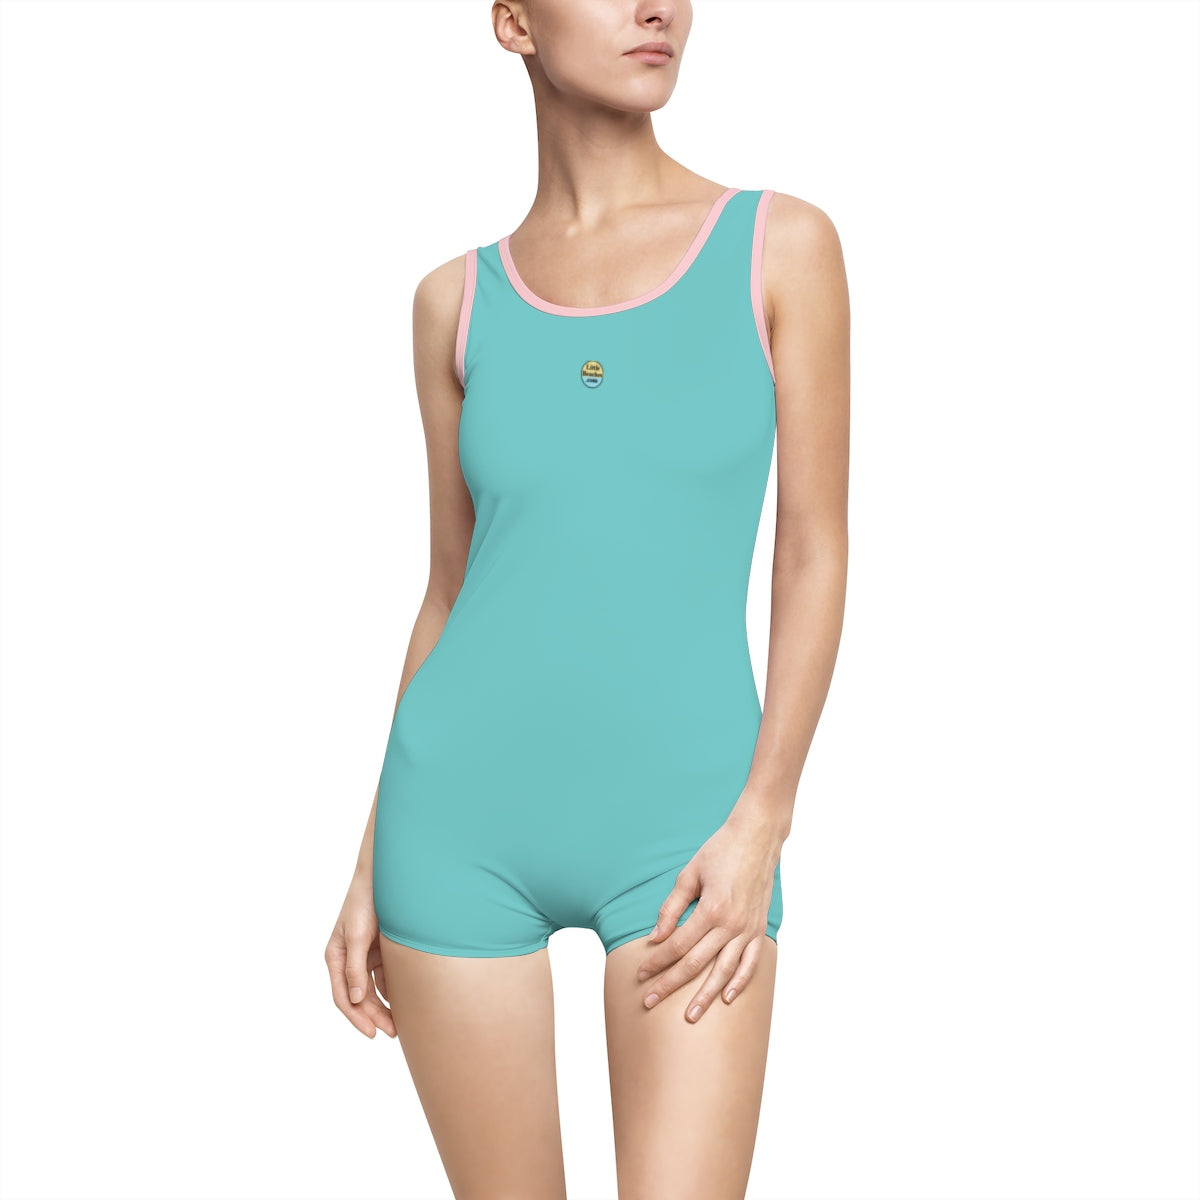 Sea Foam Green is the Vintage choice for this season - Little Beaches